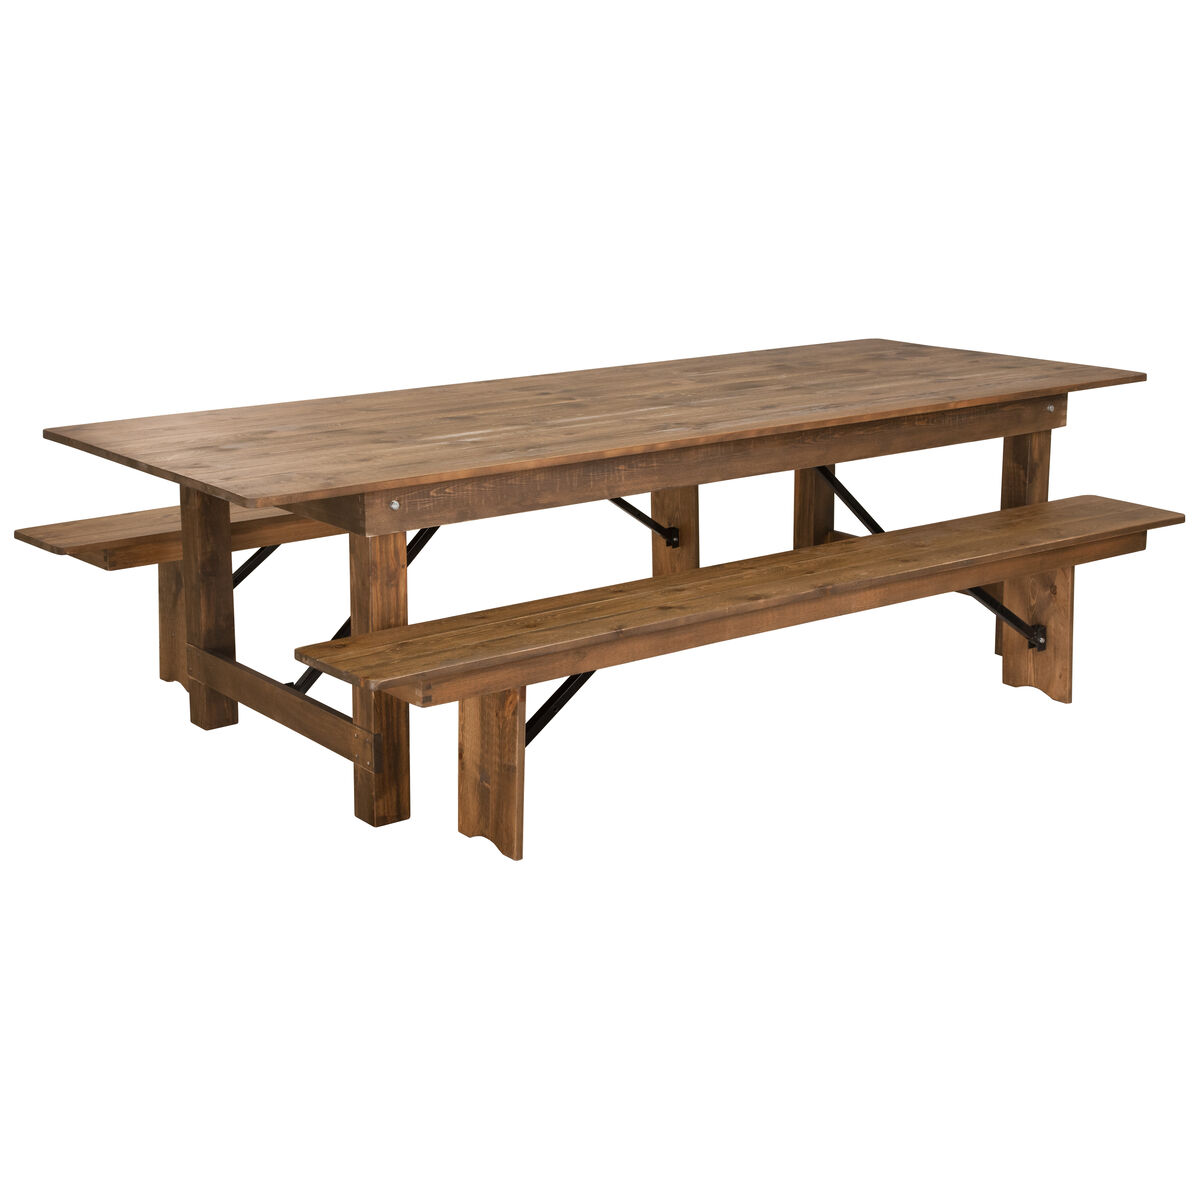 9x40 farm table2 bench set xa farm 6 gg bizchair our hercules series 9 x 40 antique rustic folding farm table and two watchthetrailerfo